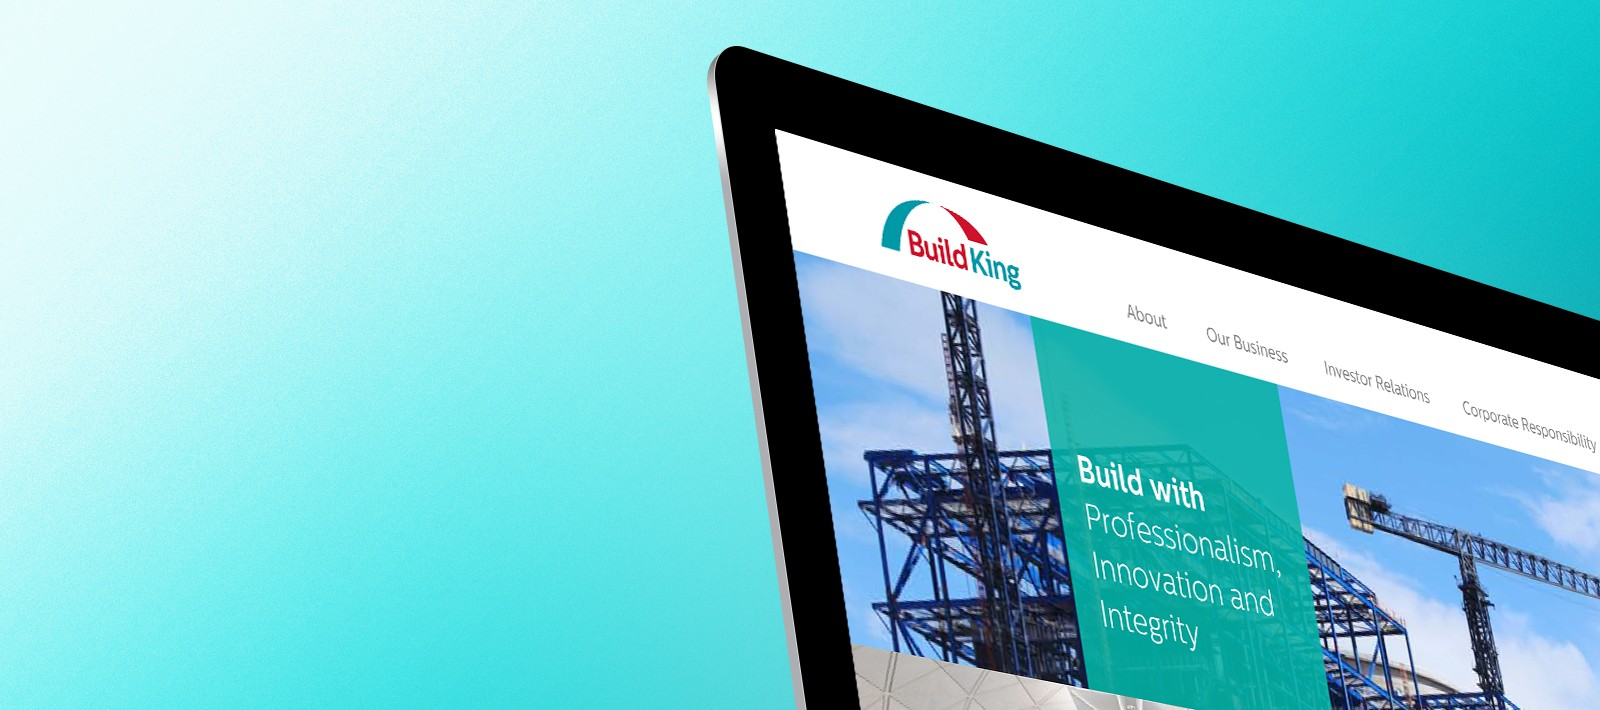 Brand refreshment for Buildking